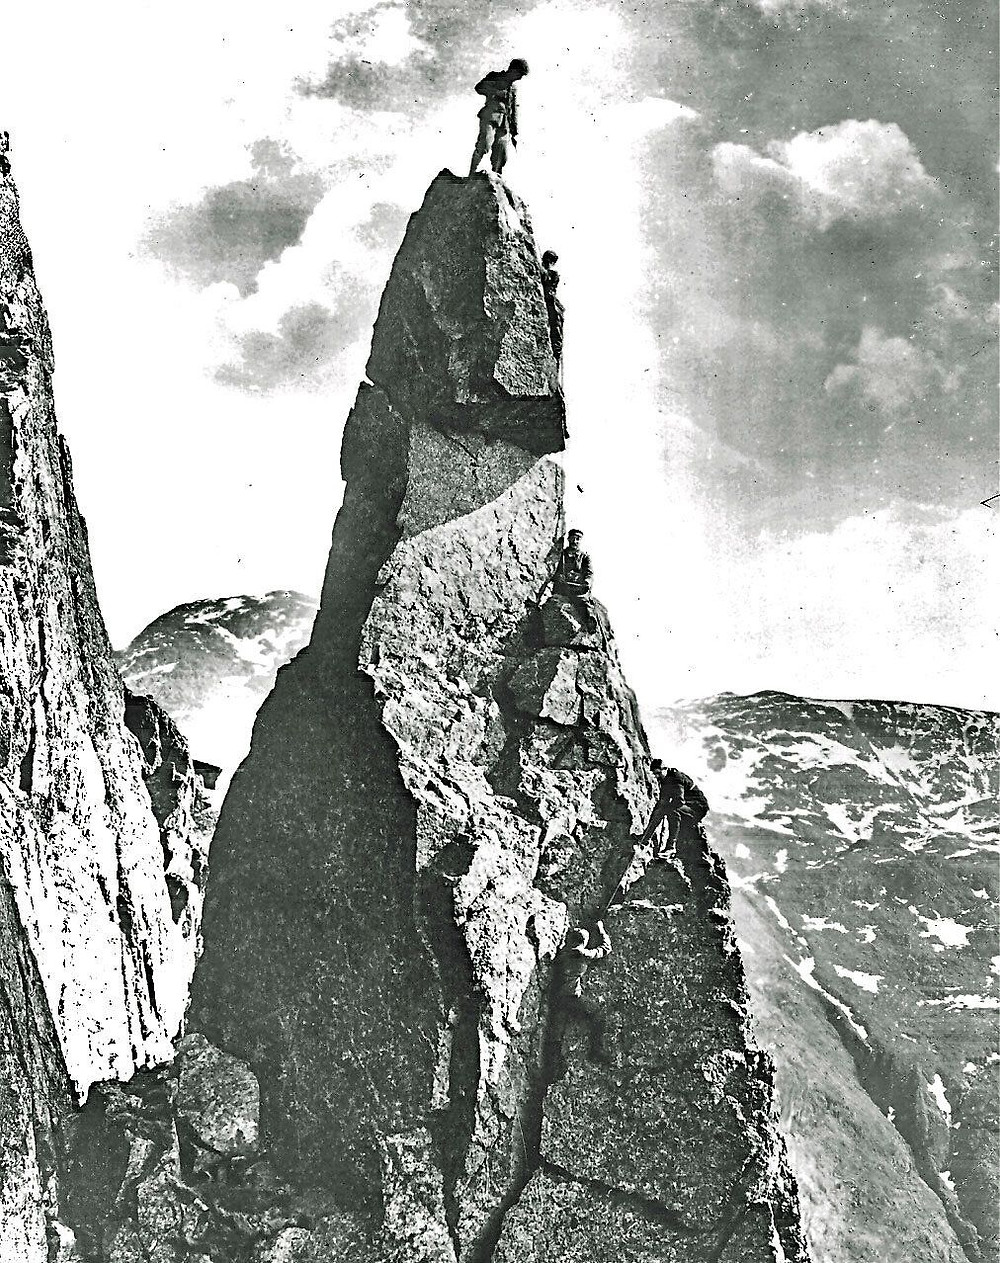 The Napes Needle. Photo by Abraham Clarence.